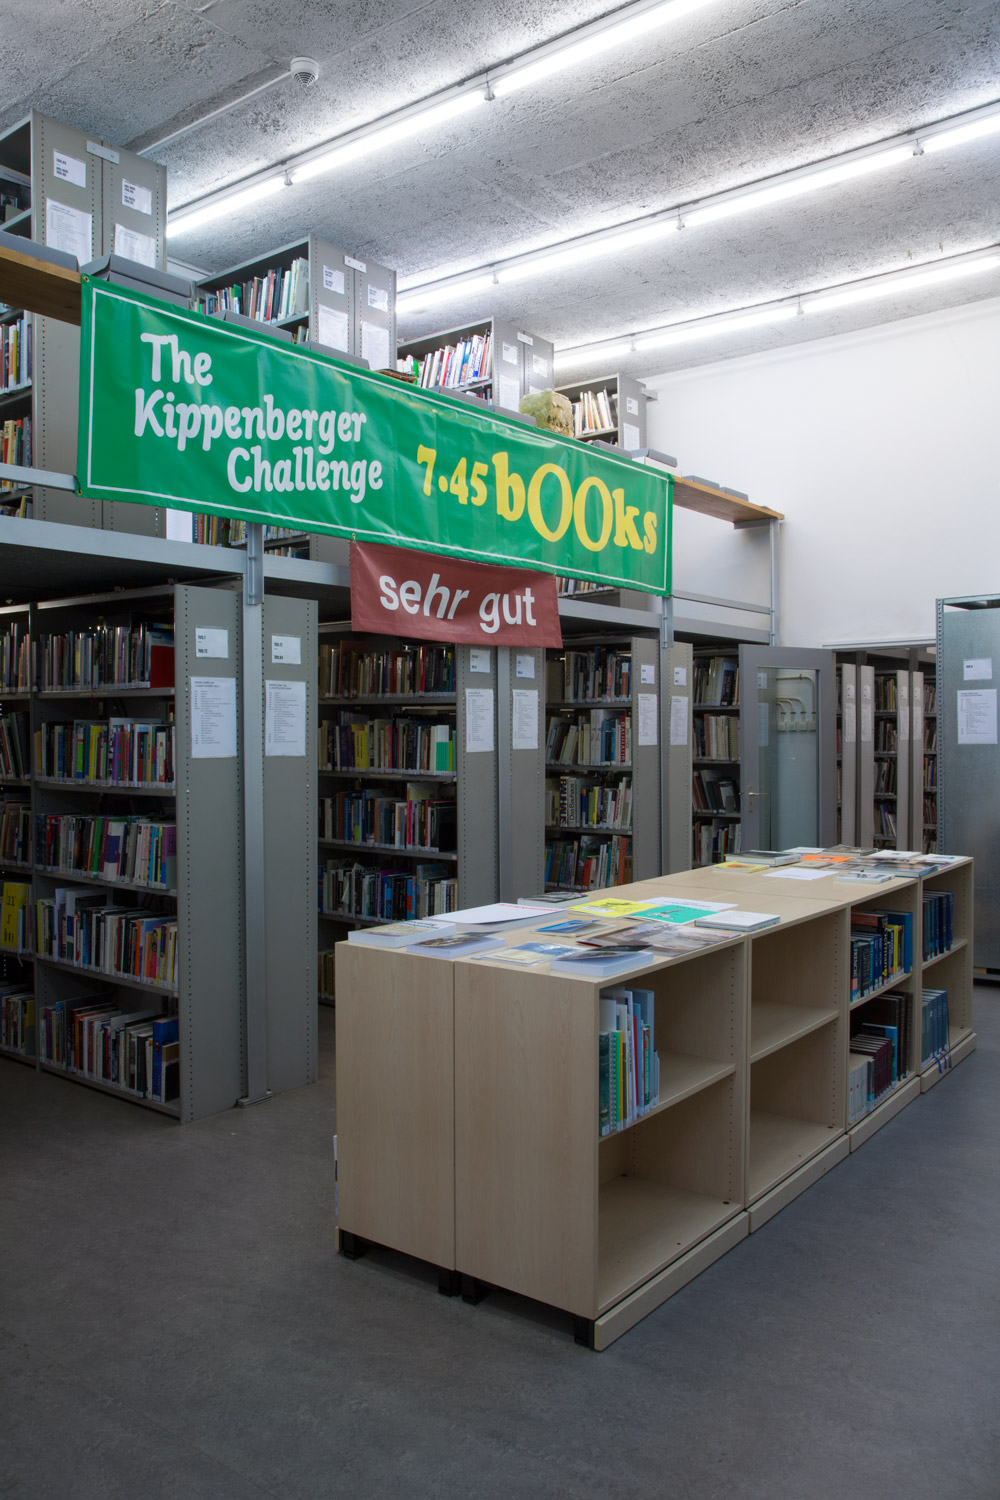 The Kippenberger Challenge (7.45 Books) Tour